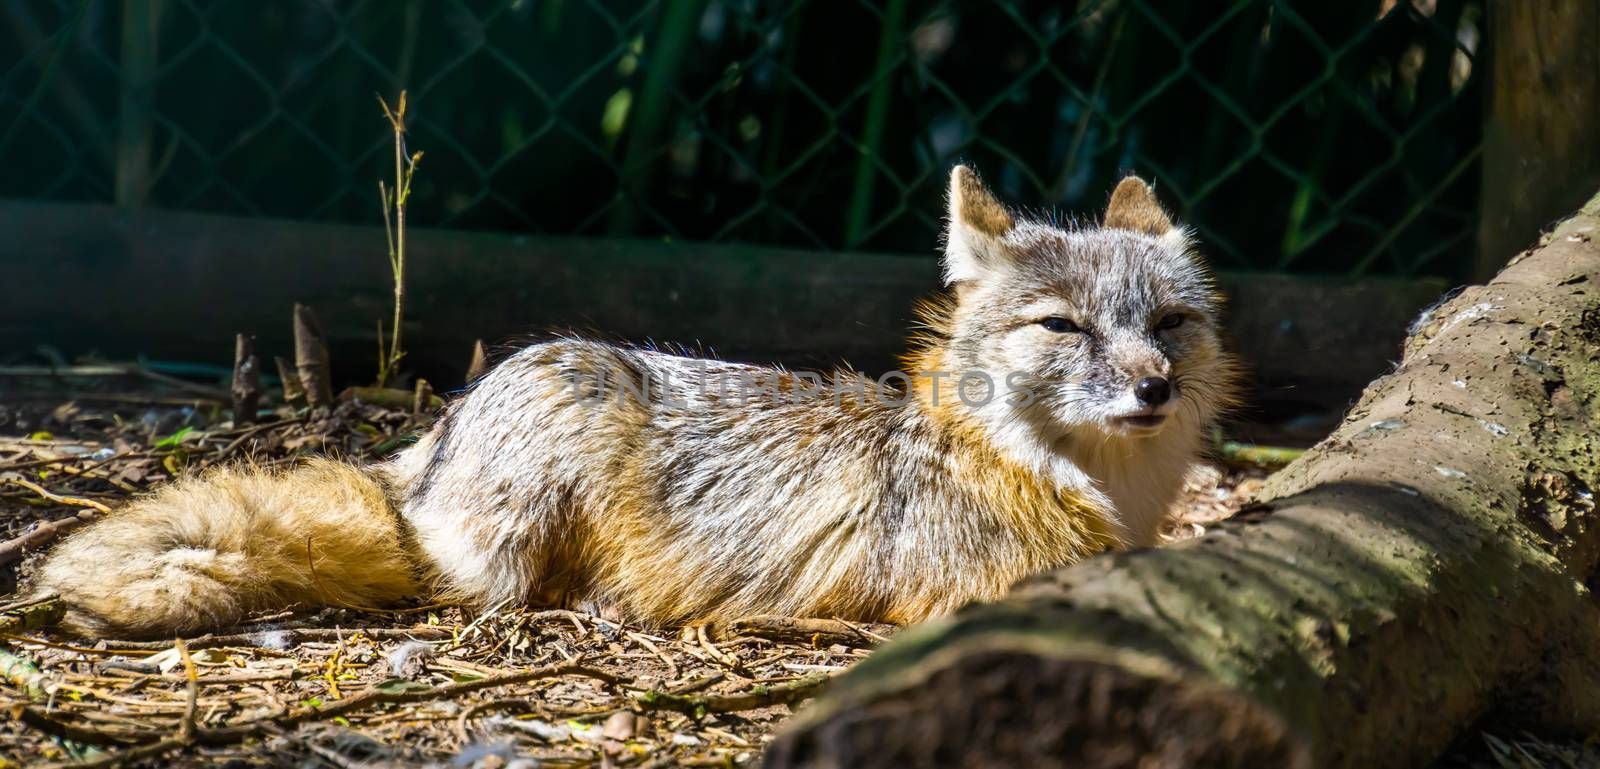 corsac fox sitting on the ground in closeup, tropical wild dog specie from Asia